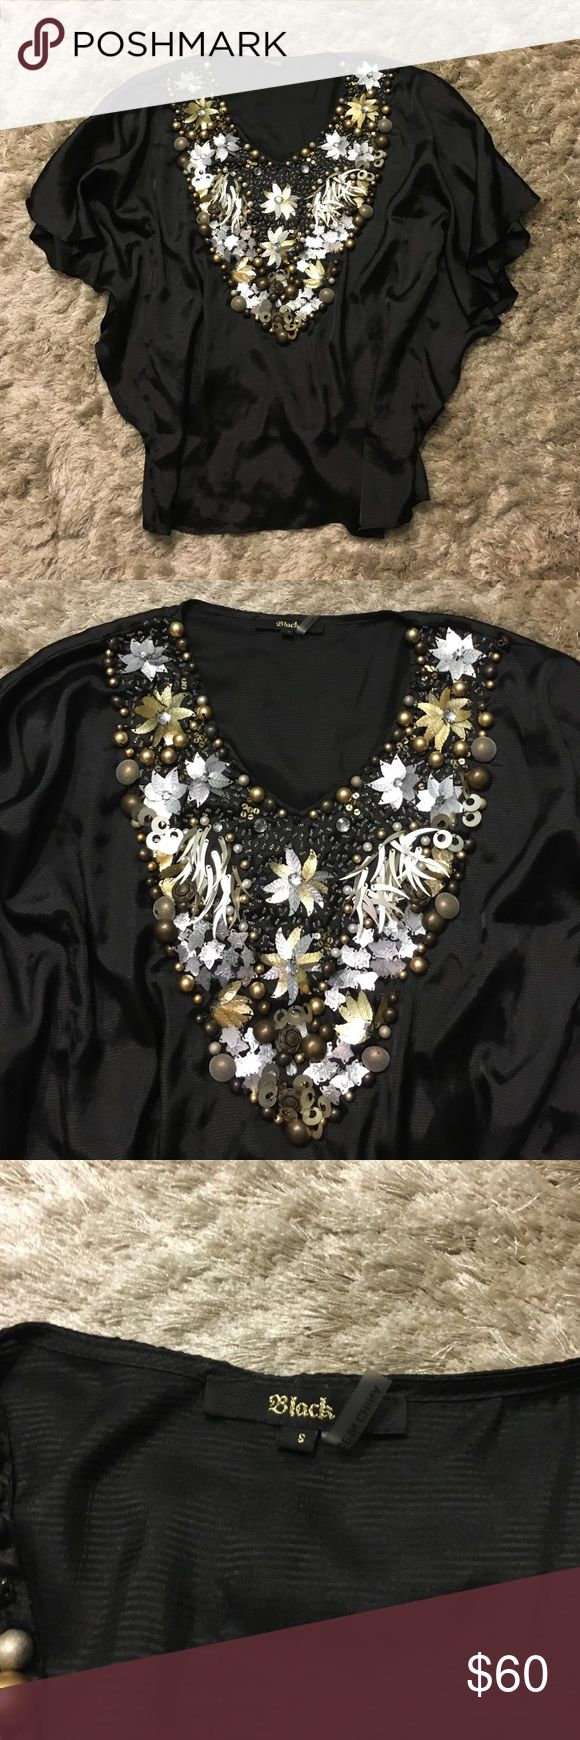 """Black Brand Couture Beaded Batwing Shirt Top S """"Black"""" couture brand gold and silver embellished beaded top shirt blouse. Size small. Worn once. Perfect condition. No rips, stains, or holes. Feel free to ask any questions or make an offer! Please check out my other listings, I do offer a bundle discount! Free People Tops"""